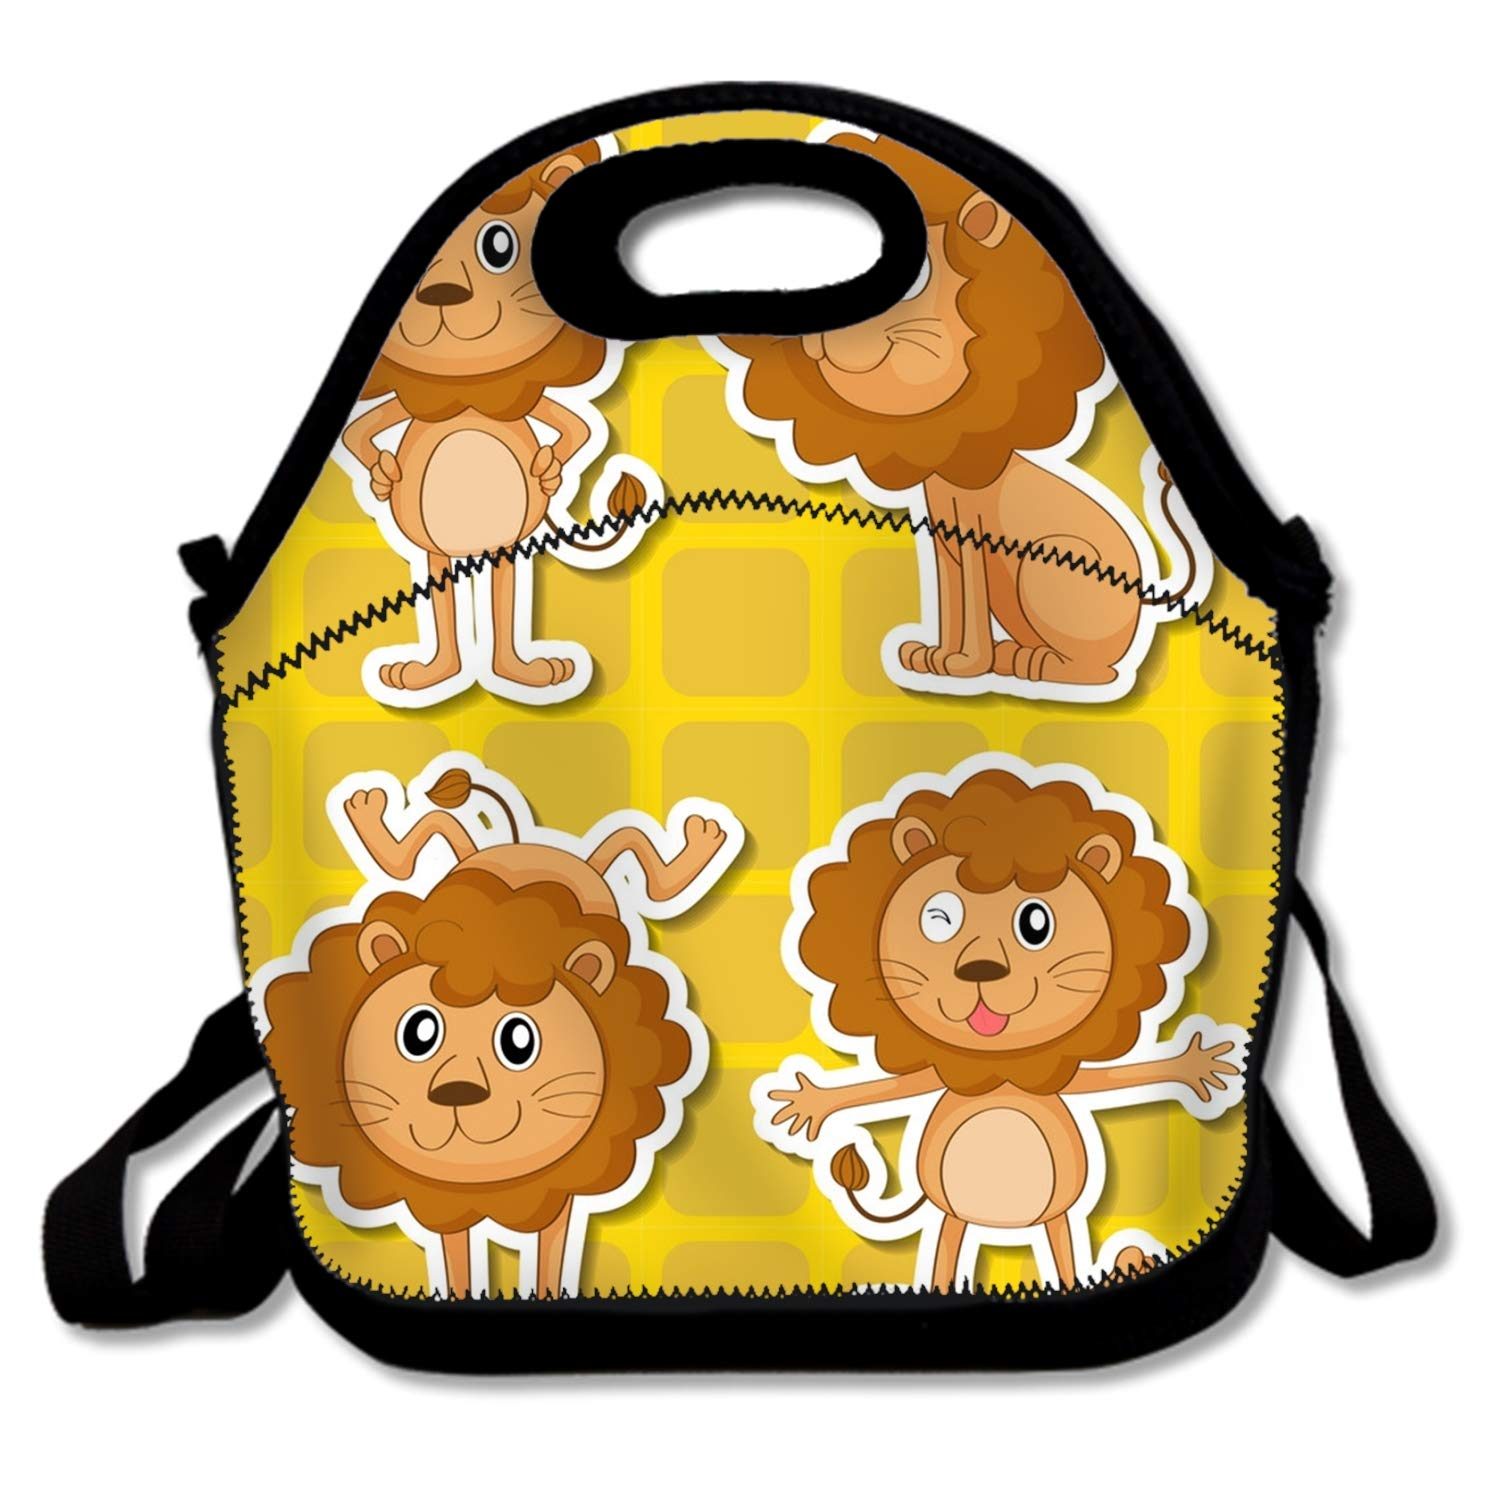 Insulated cute Lunch BagBrown LionsReusable Tote Lunchbox